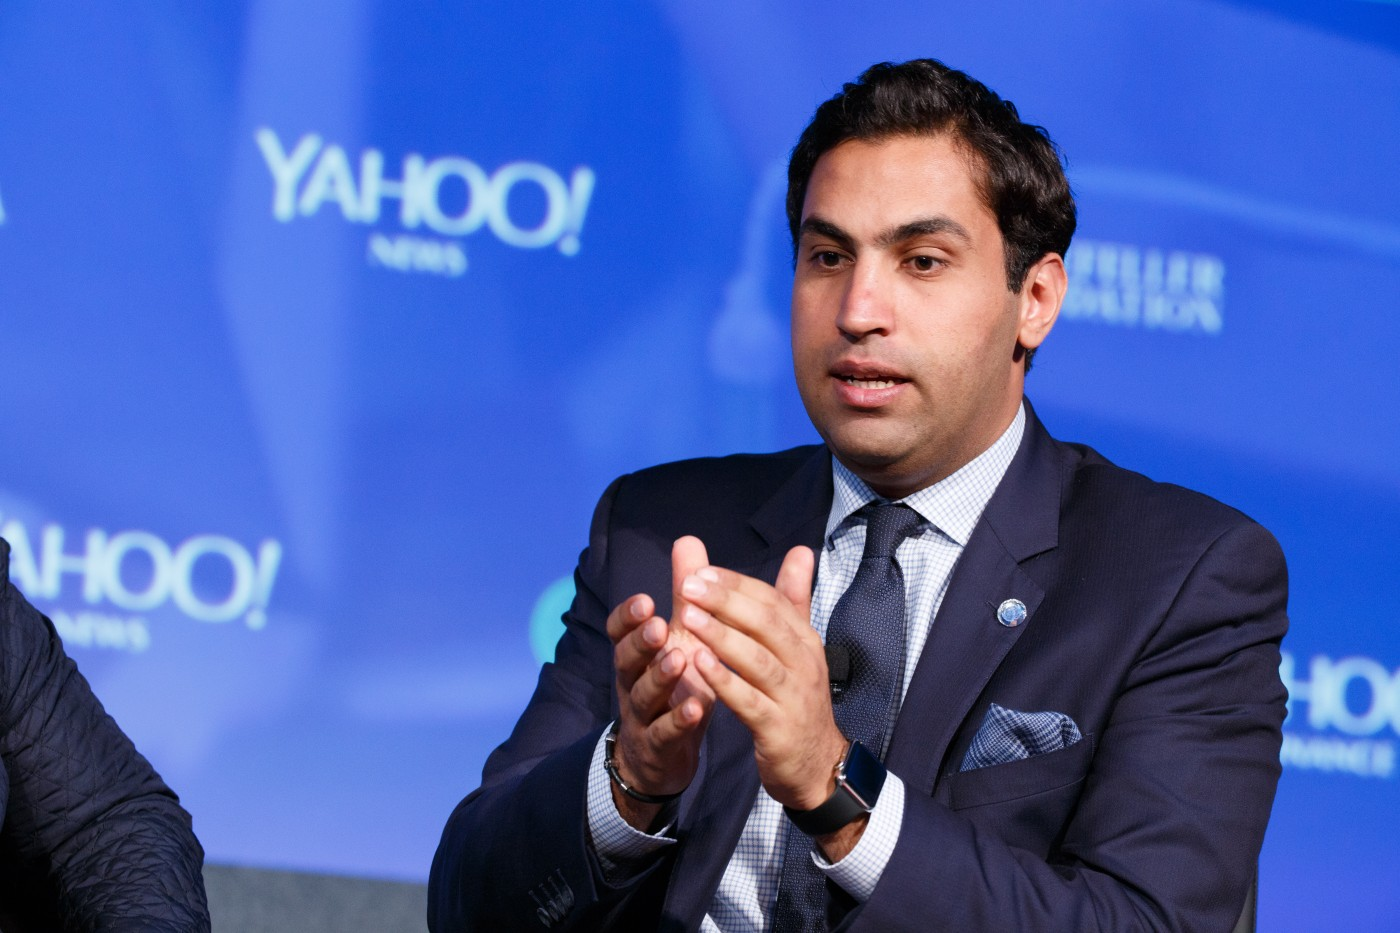 Ahmad Alhendawi employing the future - youth employment archives - concordia